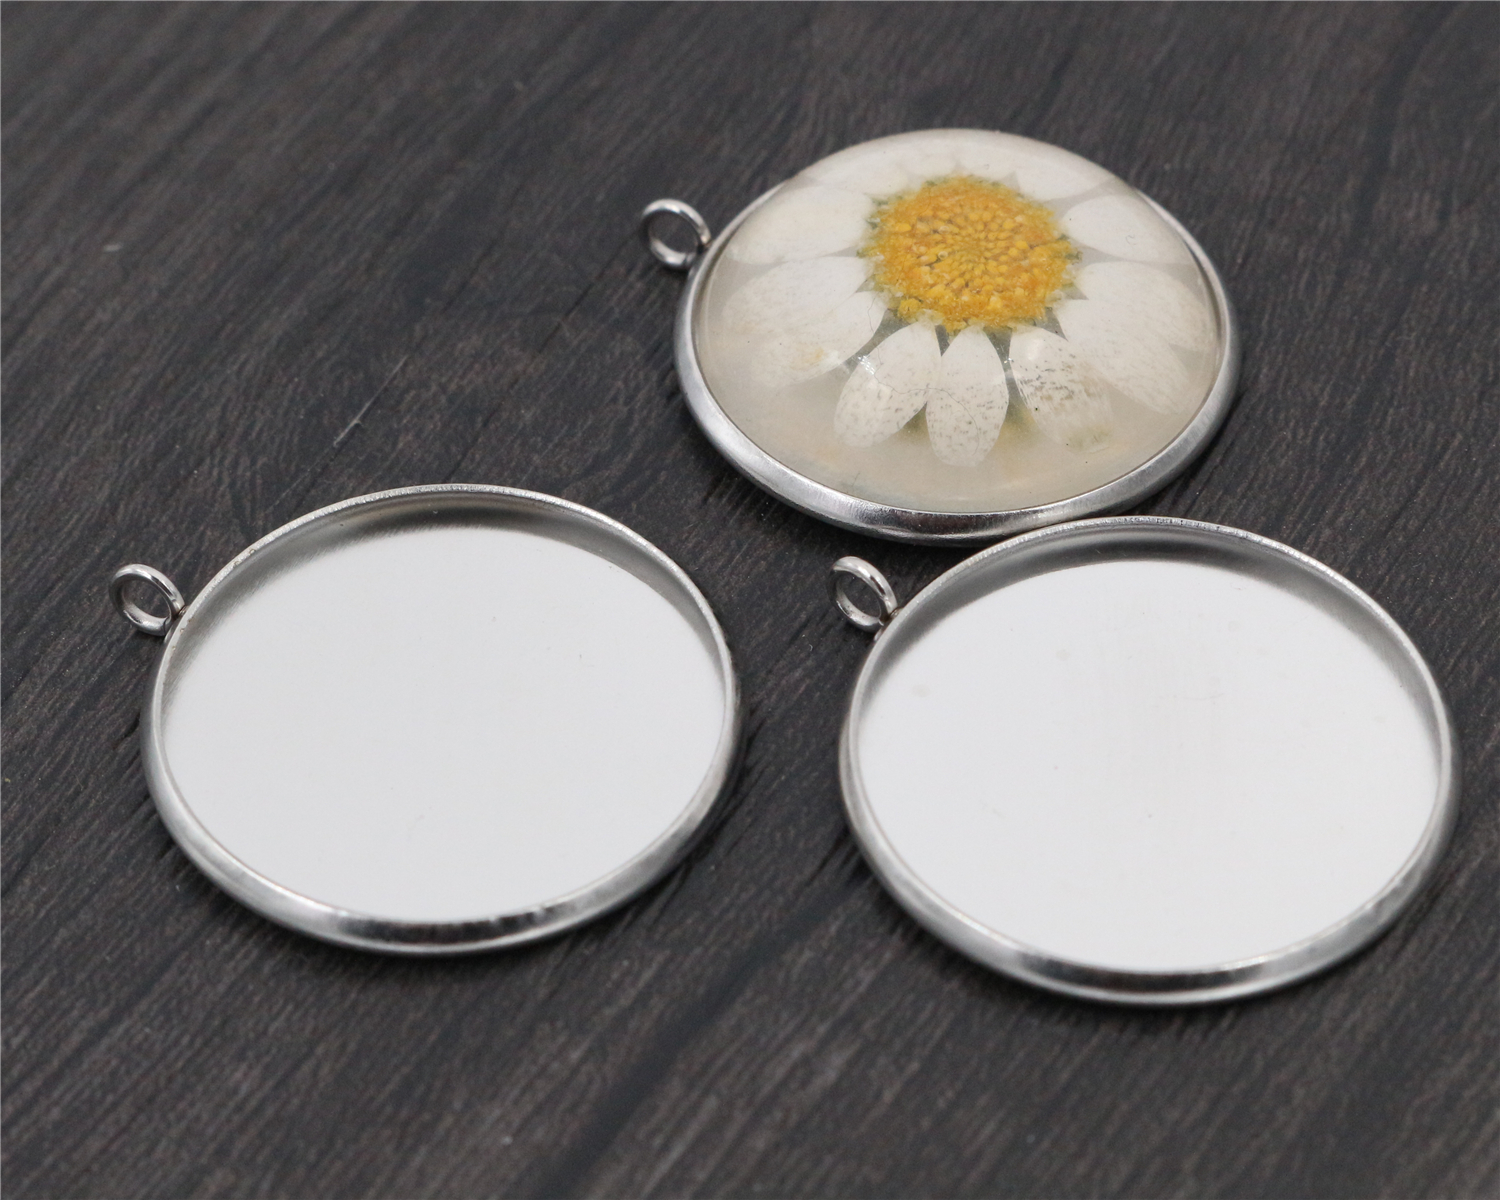 ( No Fade ) 10pcs 25mm Inner Size Stainless Steel Material Simple Style Cabochon Base Cameo Setting Charms Pendant Tray-D4-52( No Fade ) 10pcs 25mm Inner Size Stainless Steel Material Simple Style Cabochon Base Cameo Setting Charms Pendant Tray-D4-52